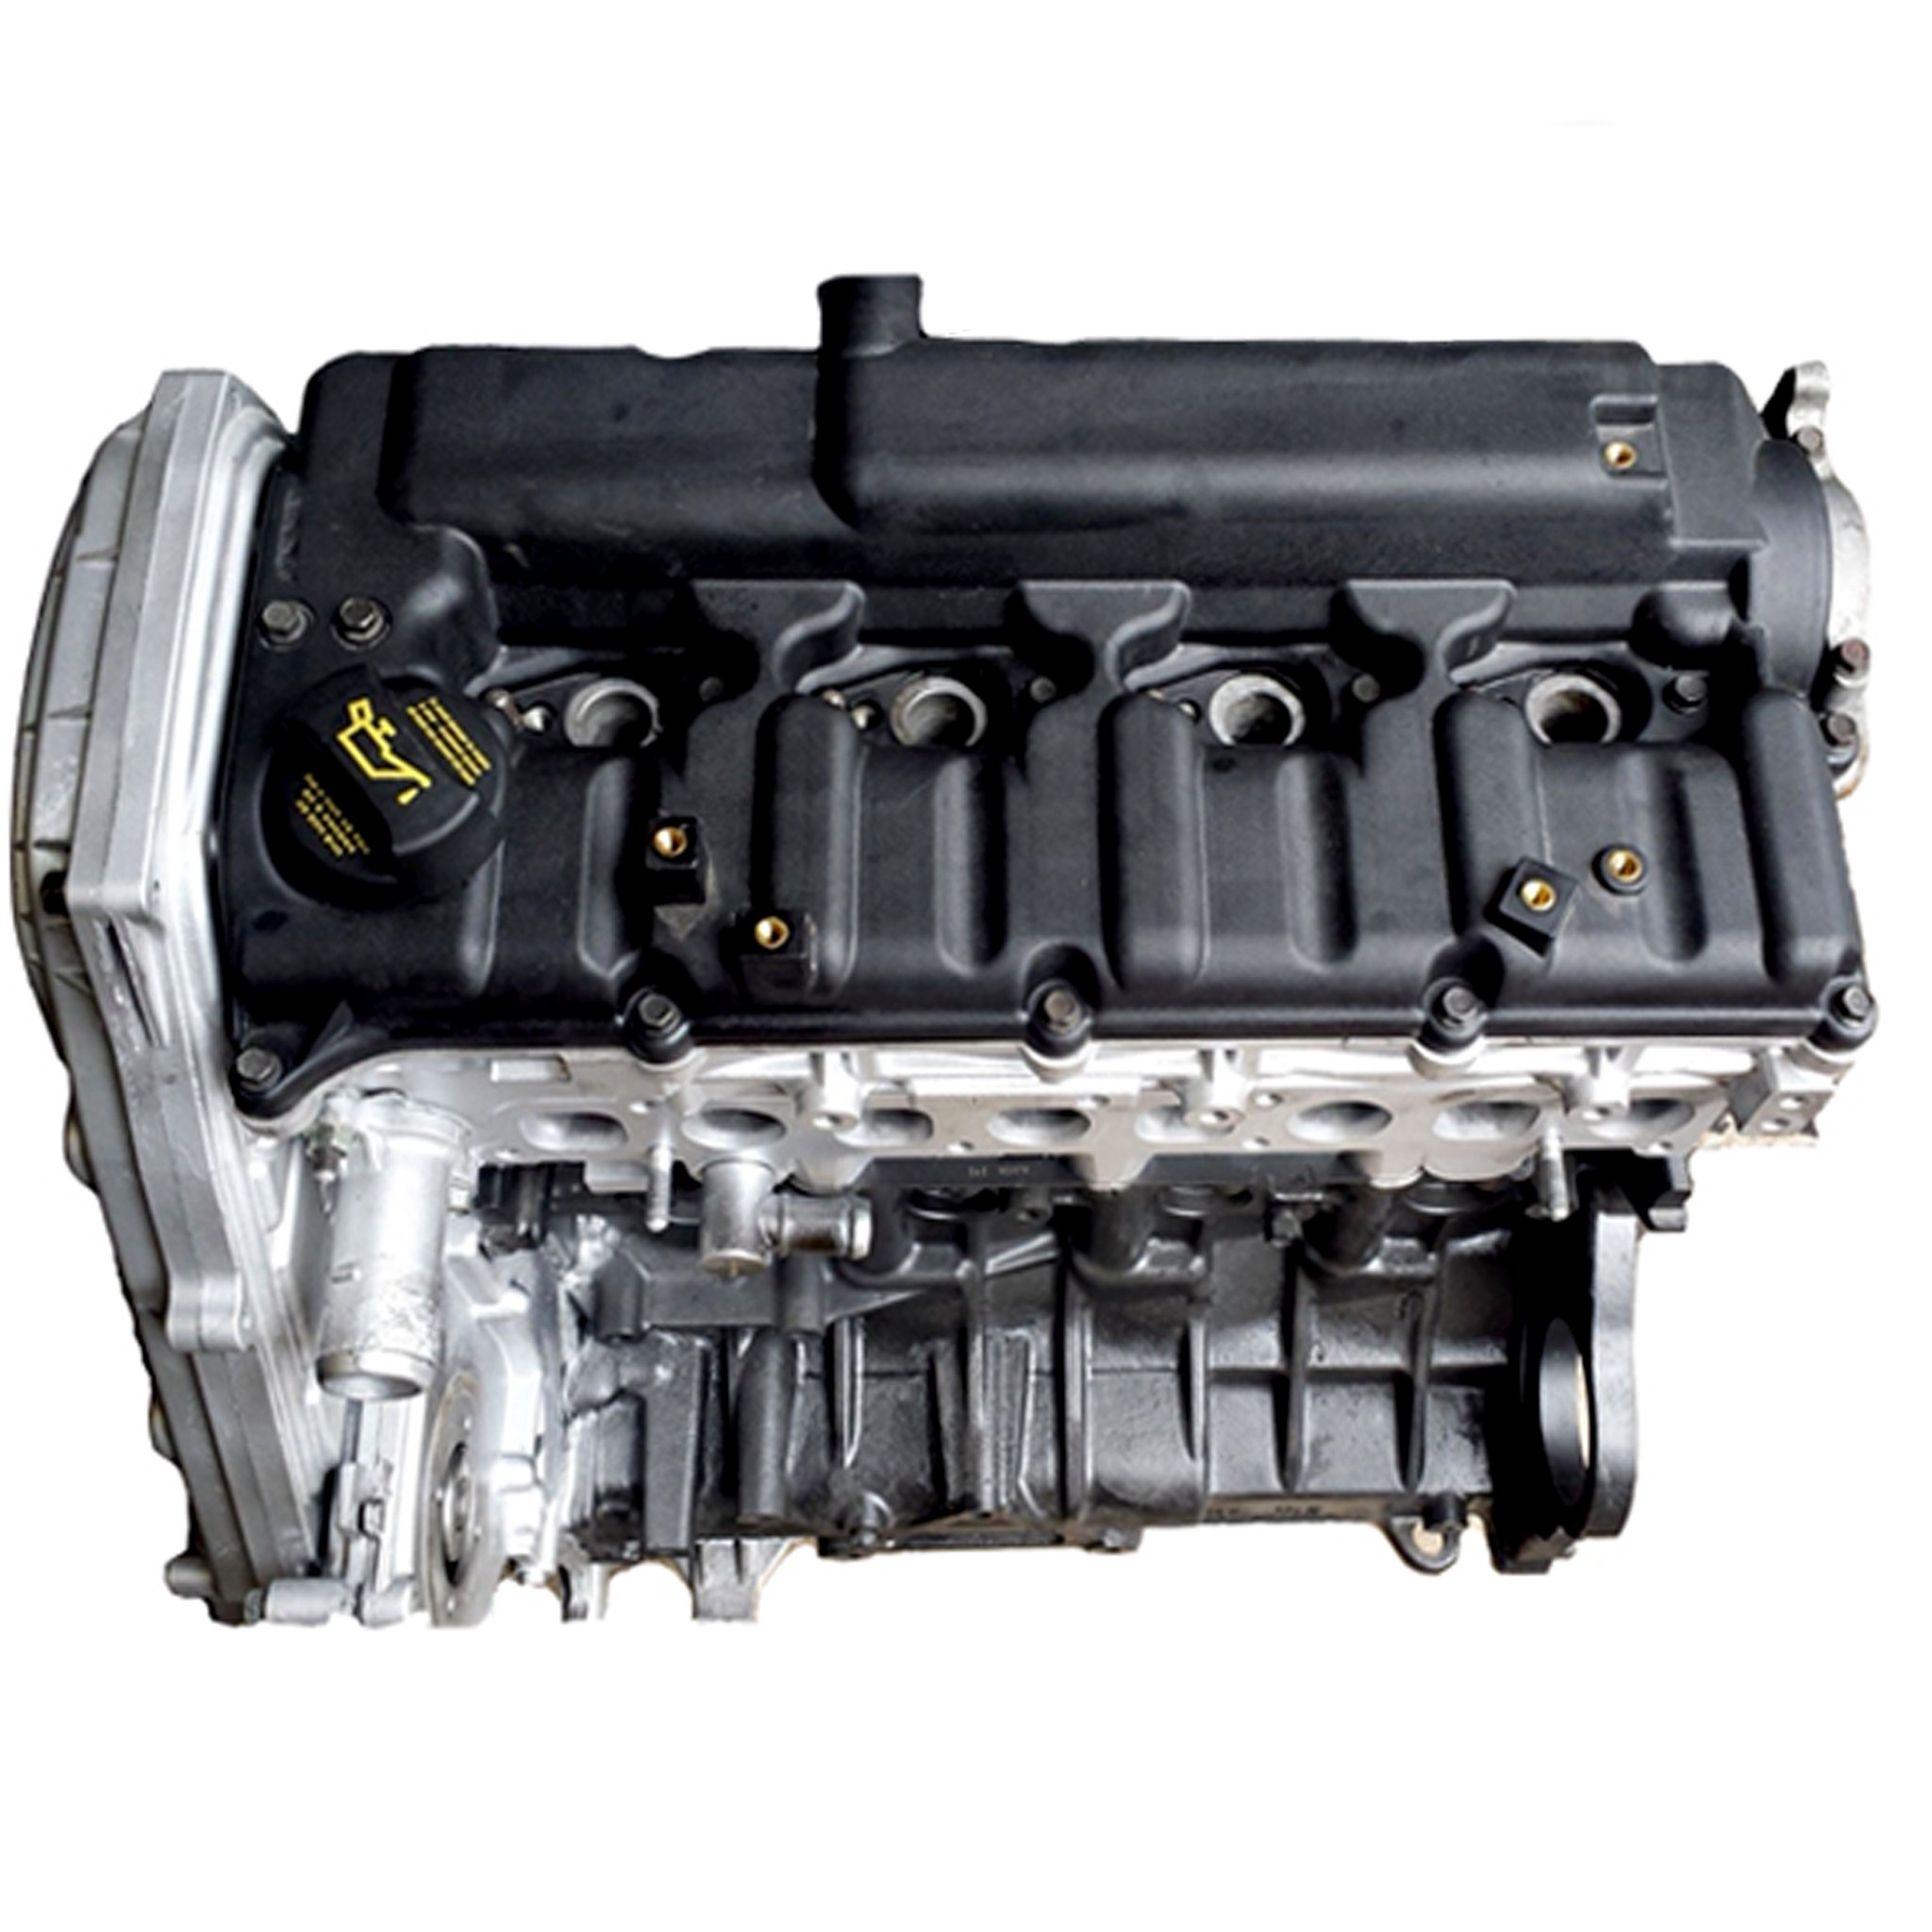 HYUNDAI H1 2.5 CRDI ДВИГАТЕЛЬ D4CB 170KM ENGINE MOTOR